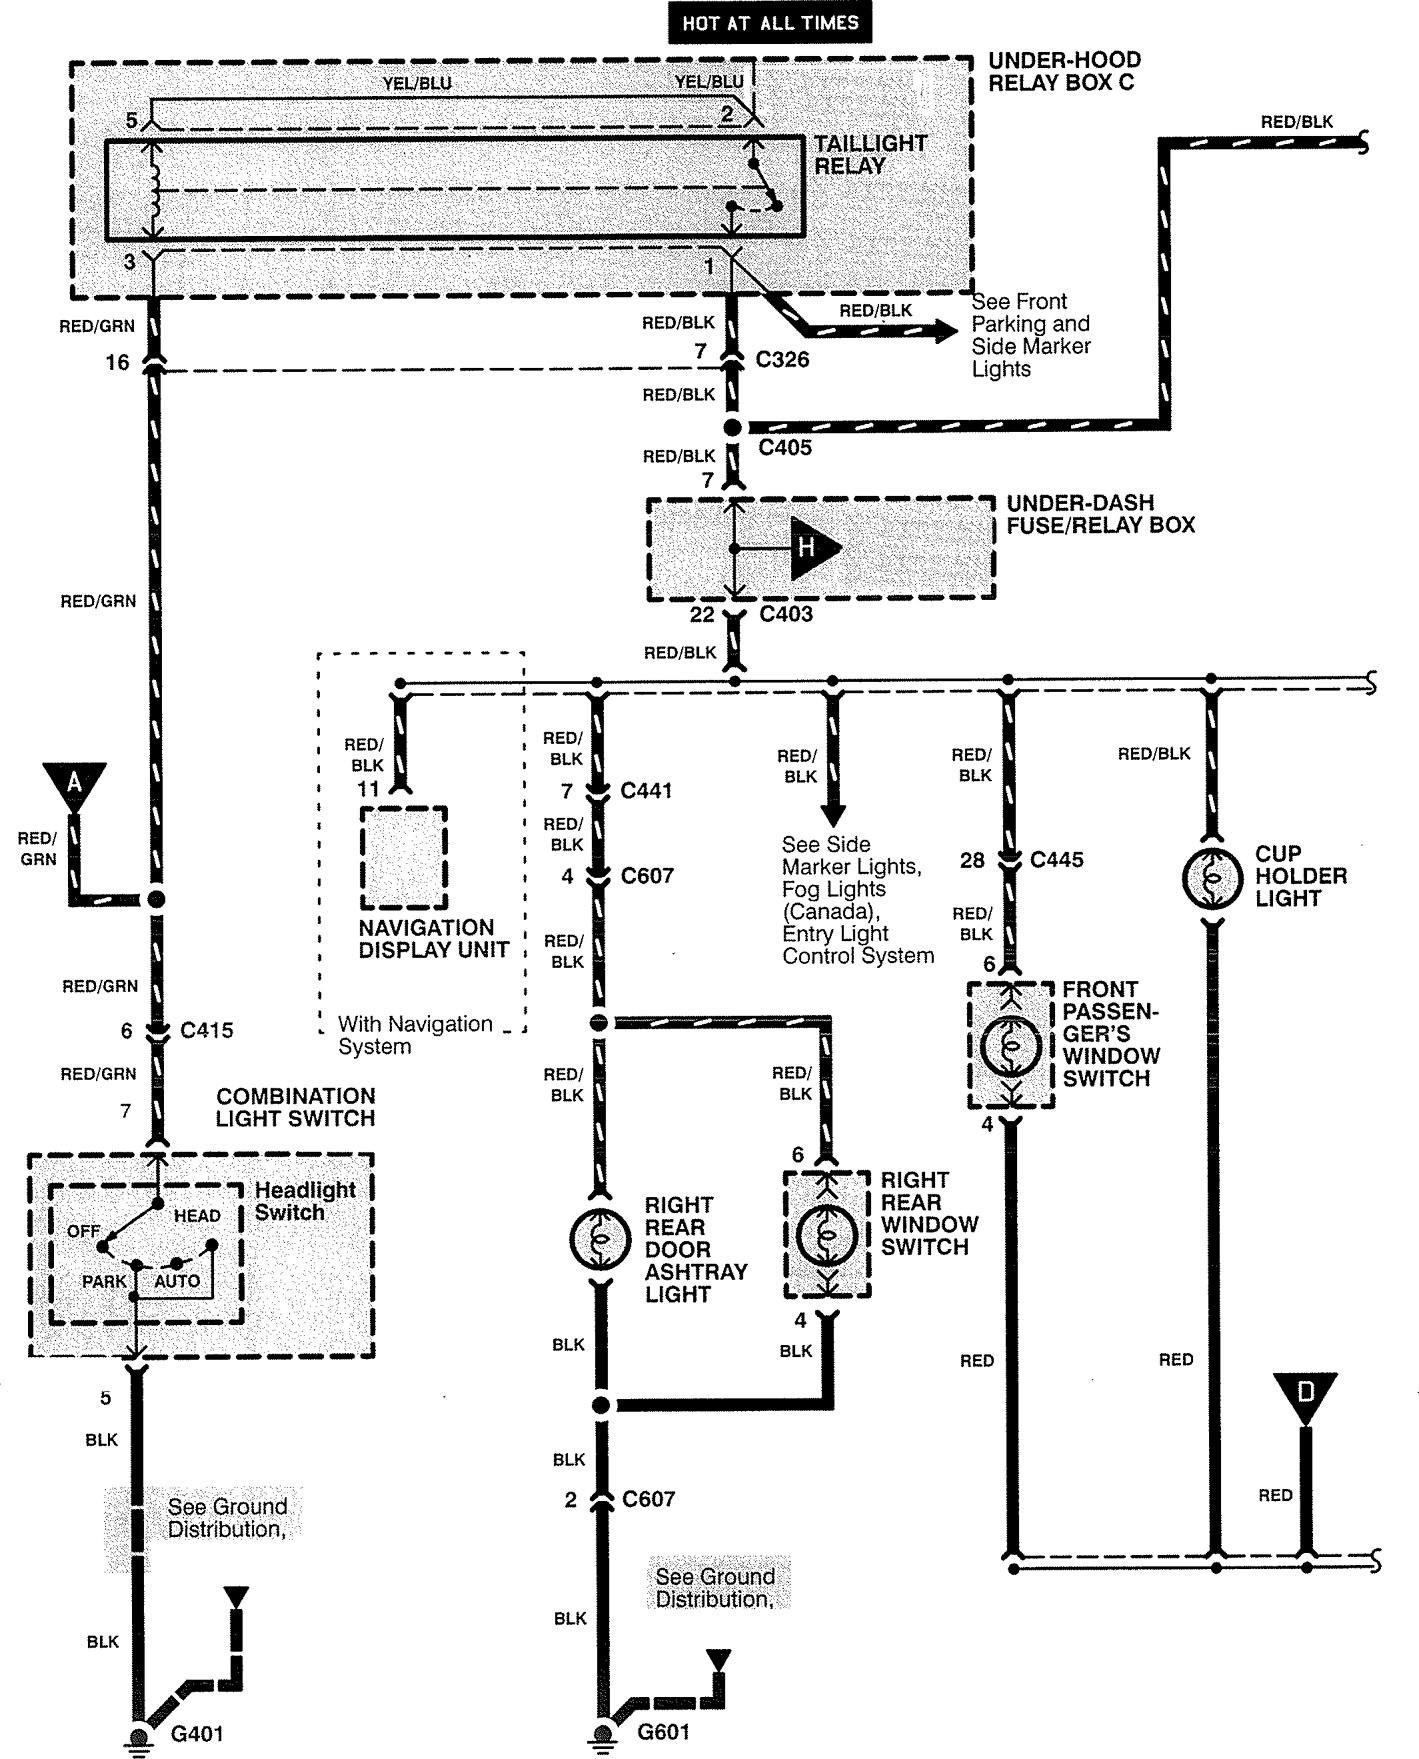 98 Acura Cl Wiring Diagram 98 Chrysler Concorde Wiring